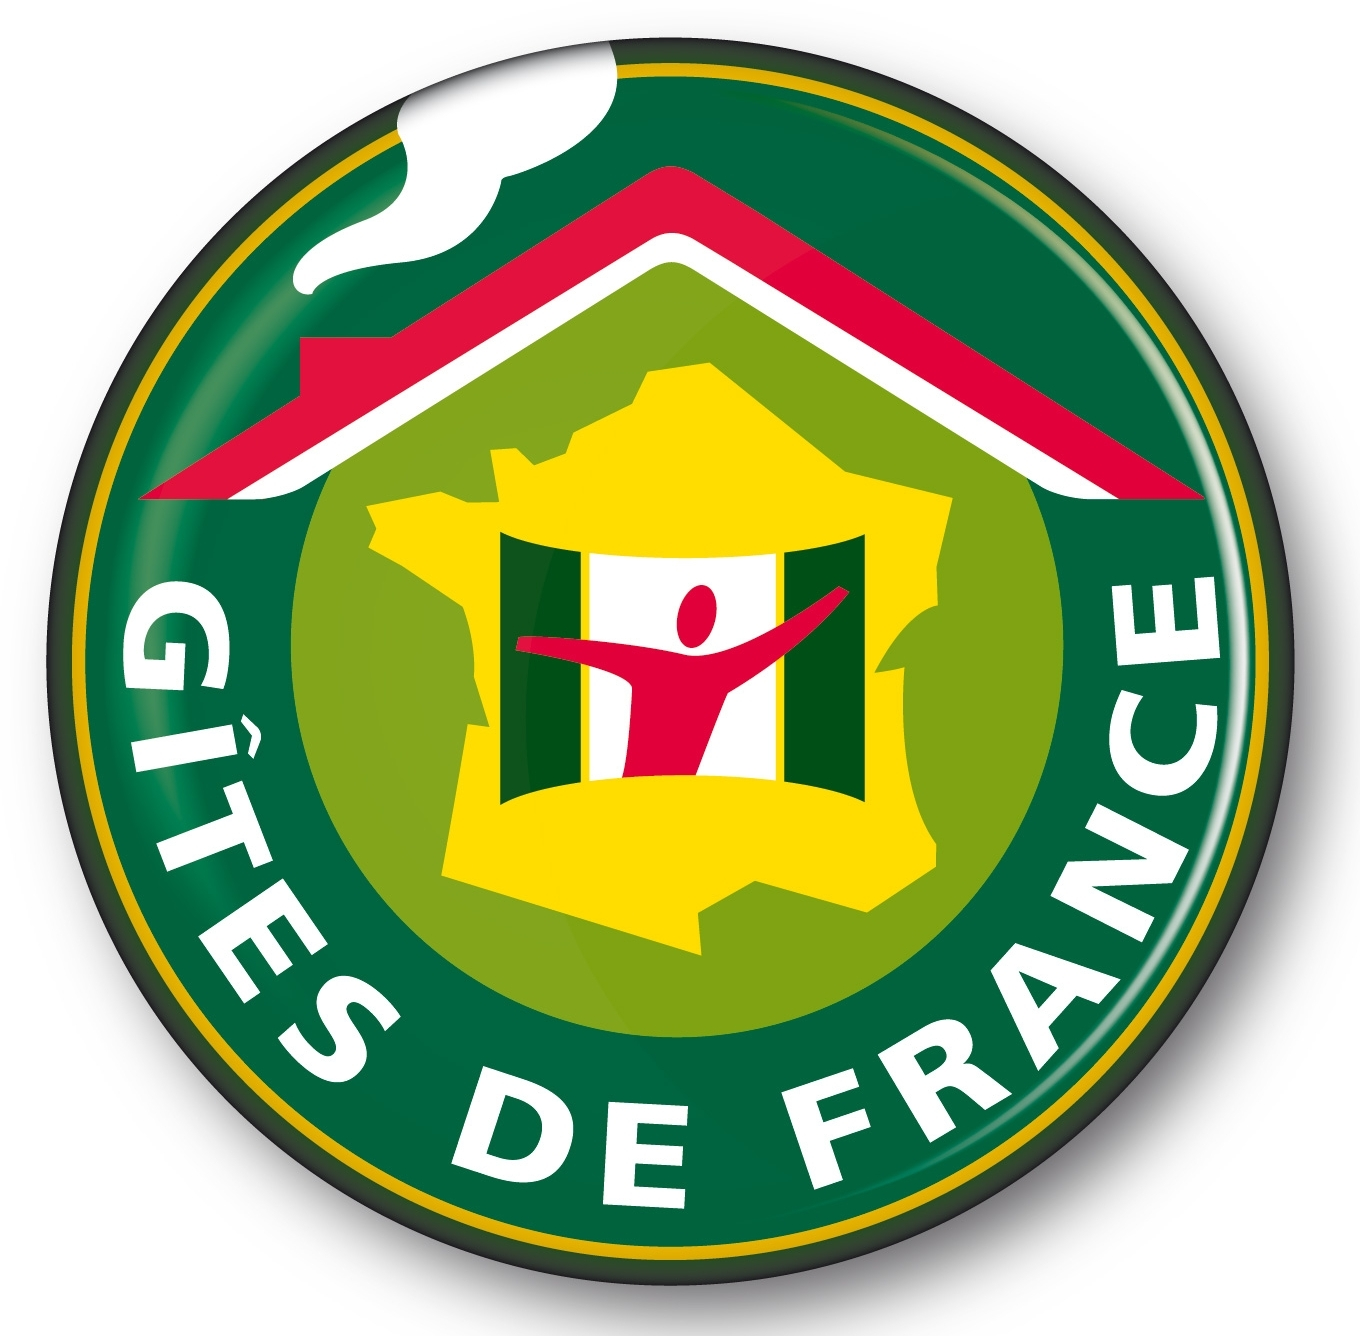 Le site des Gites de France